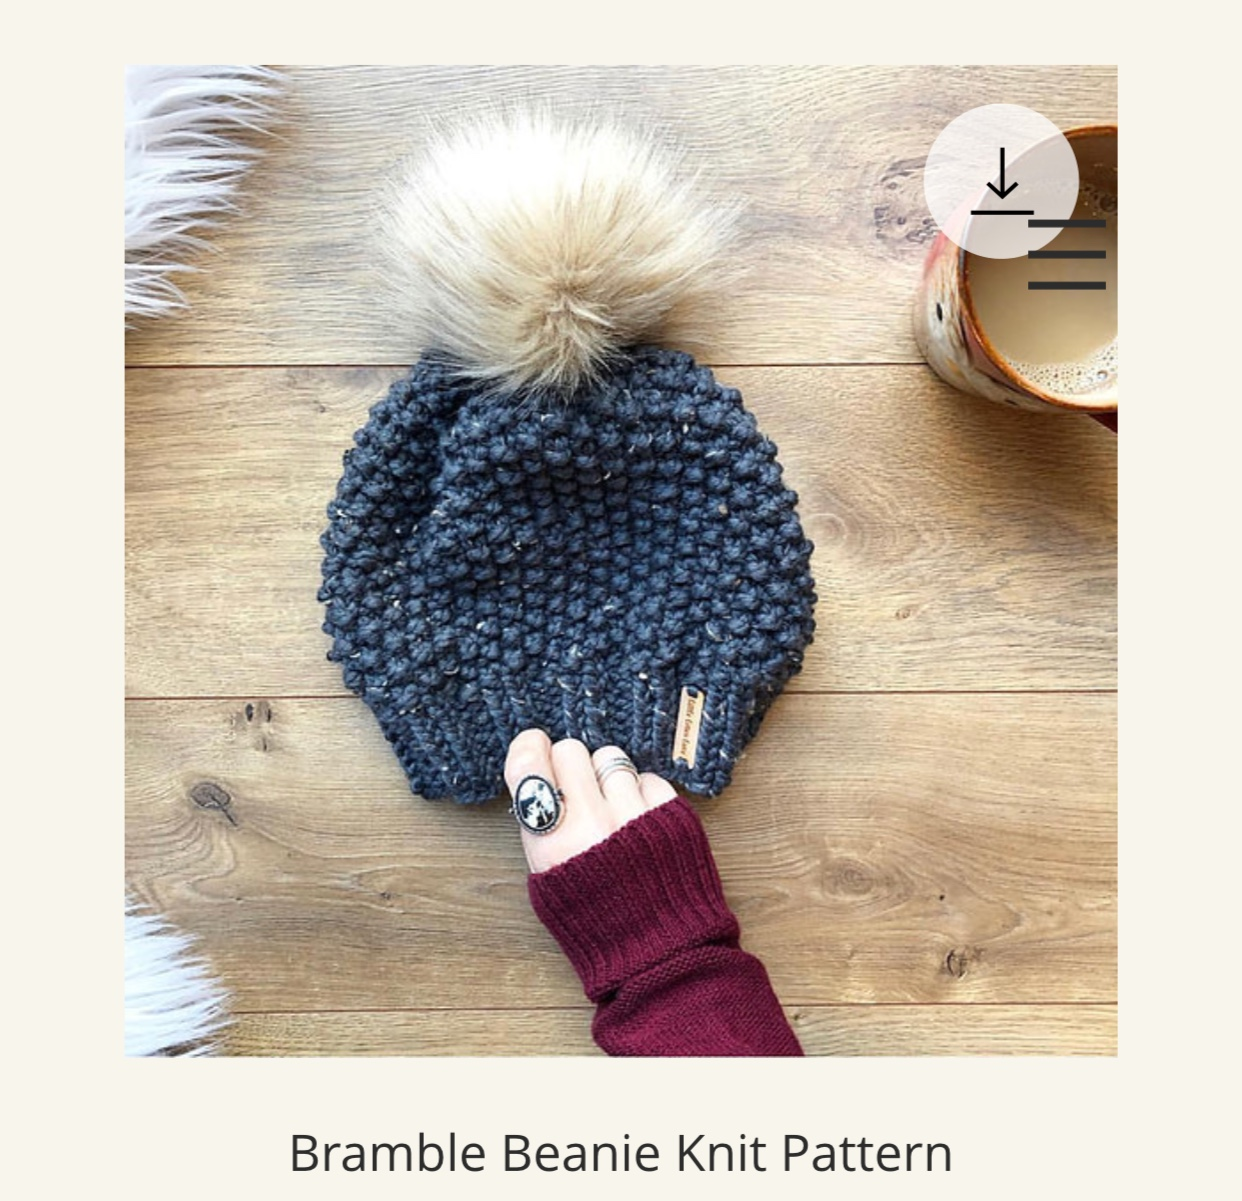 Yarn Dyeing with Laine and Lotus; Bramble Beanie Knit Pattern